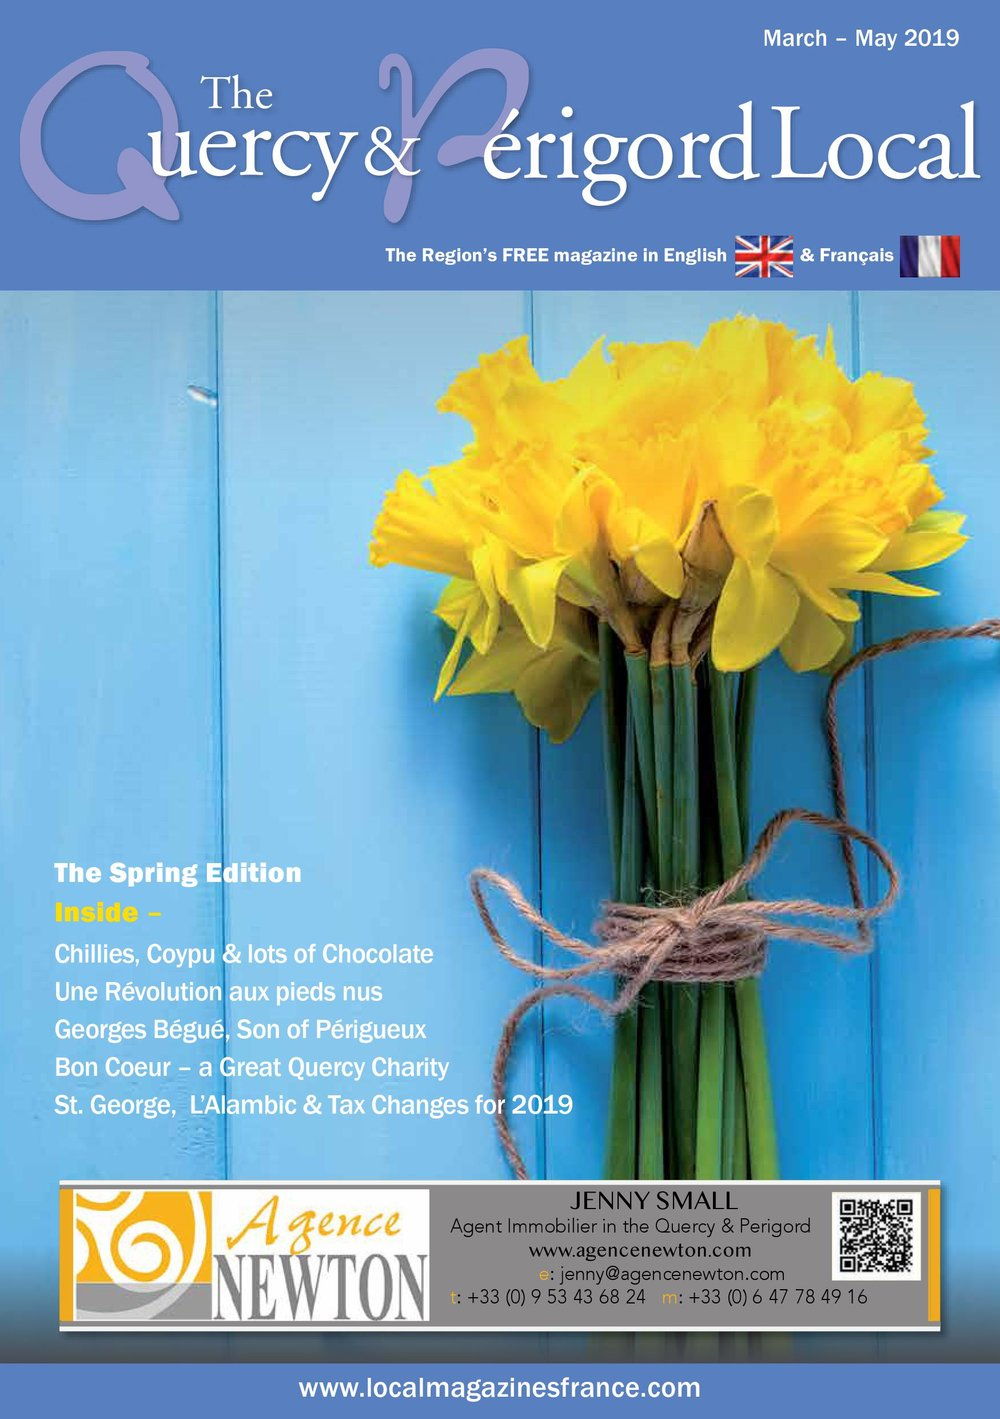 small front cover.jpg